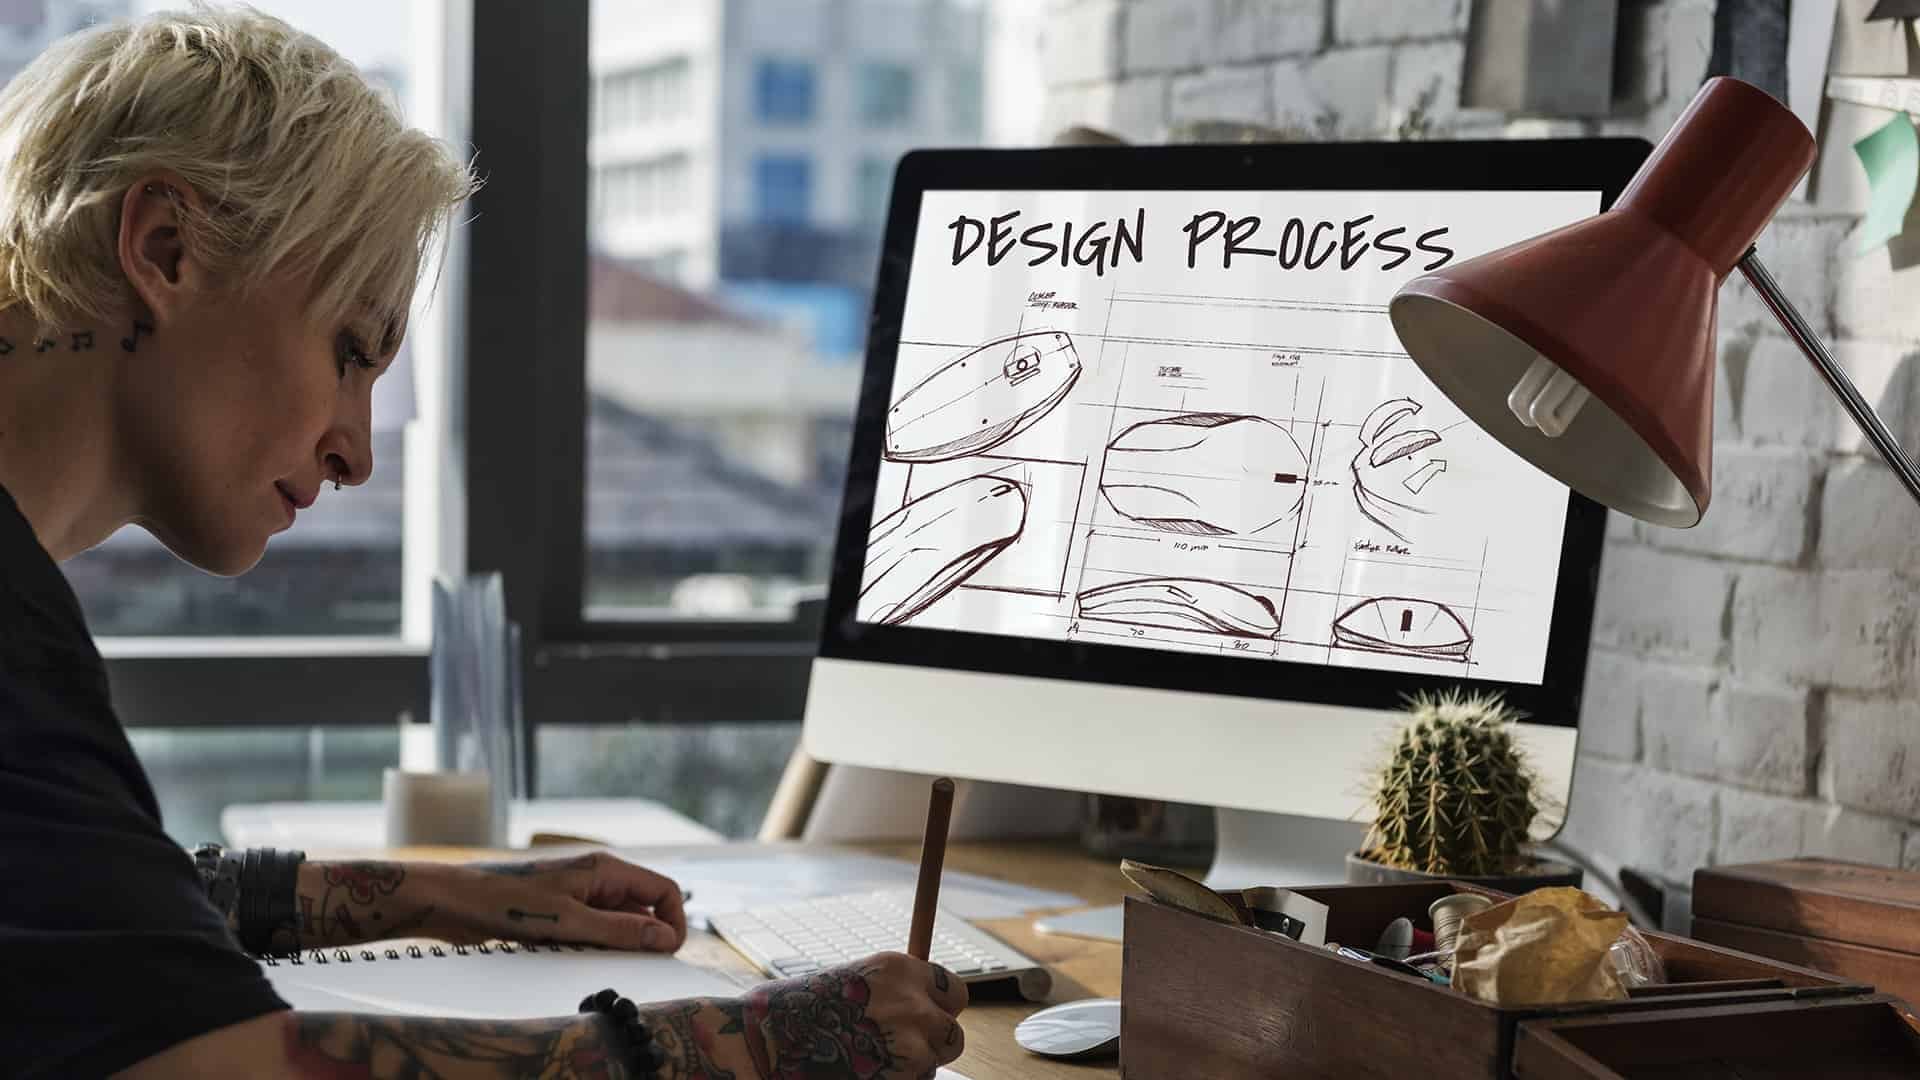 The Professional Logo Design Process for Clients 1